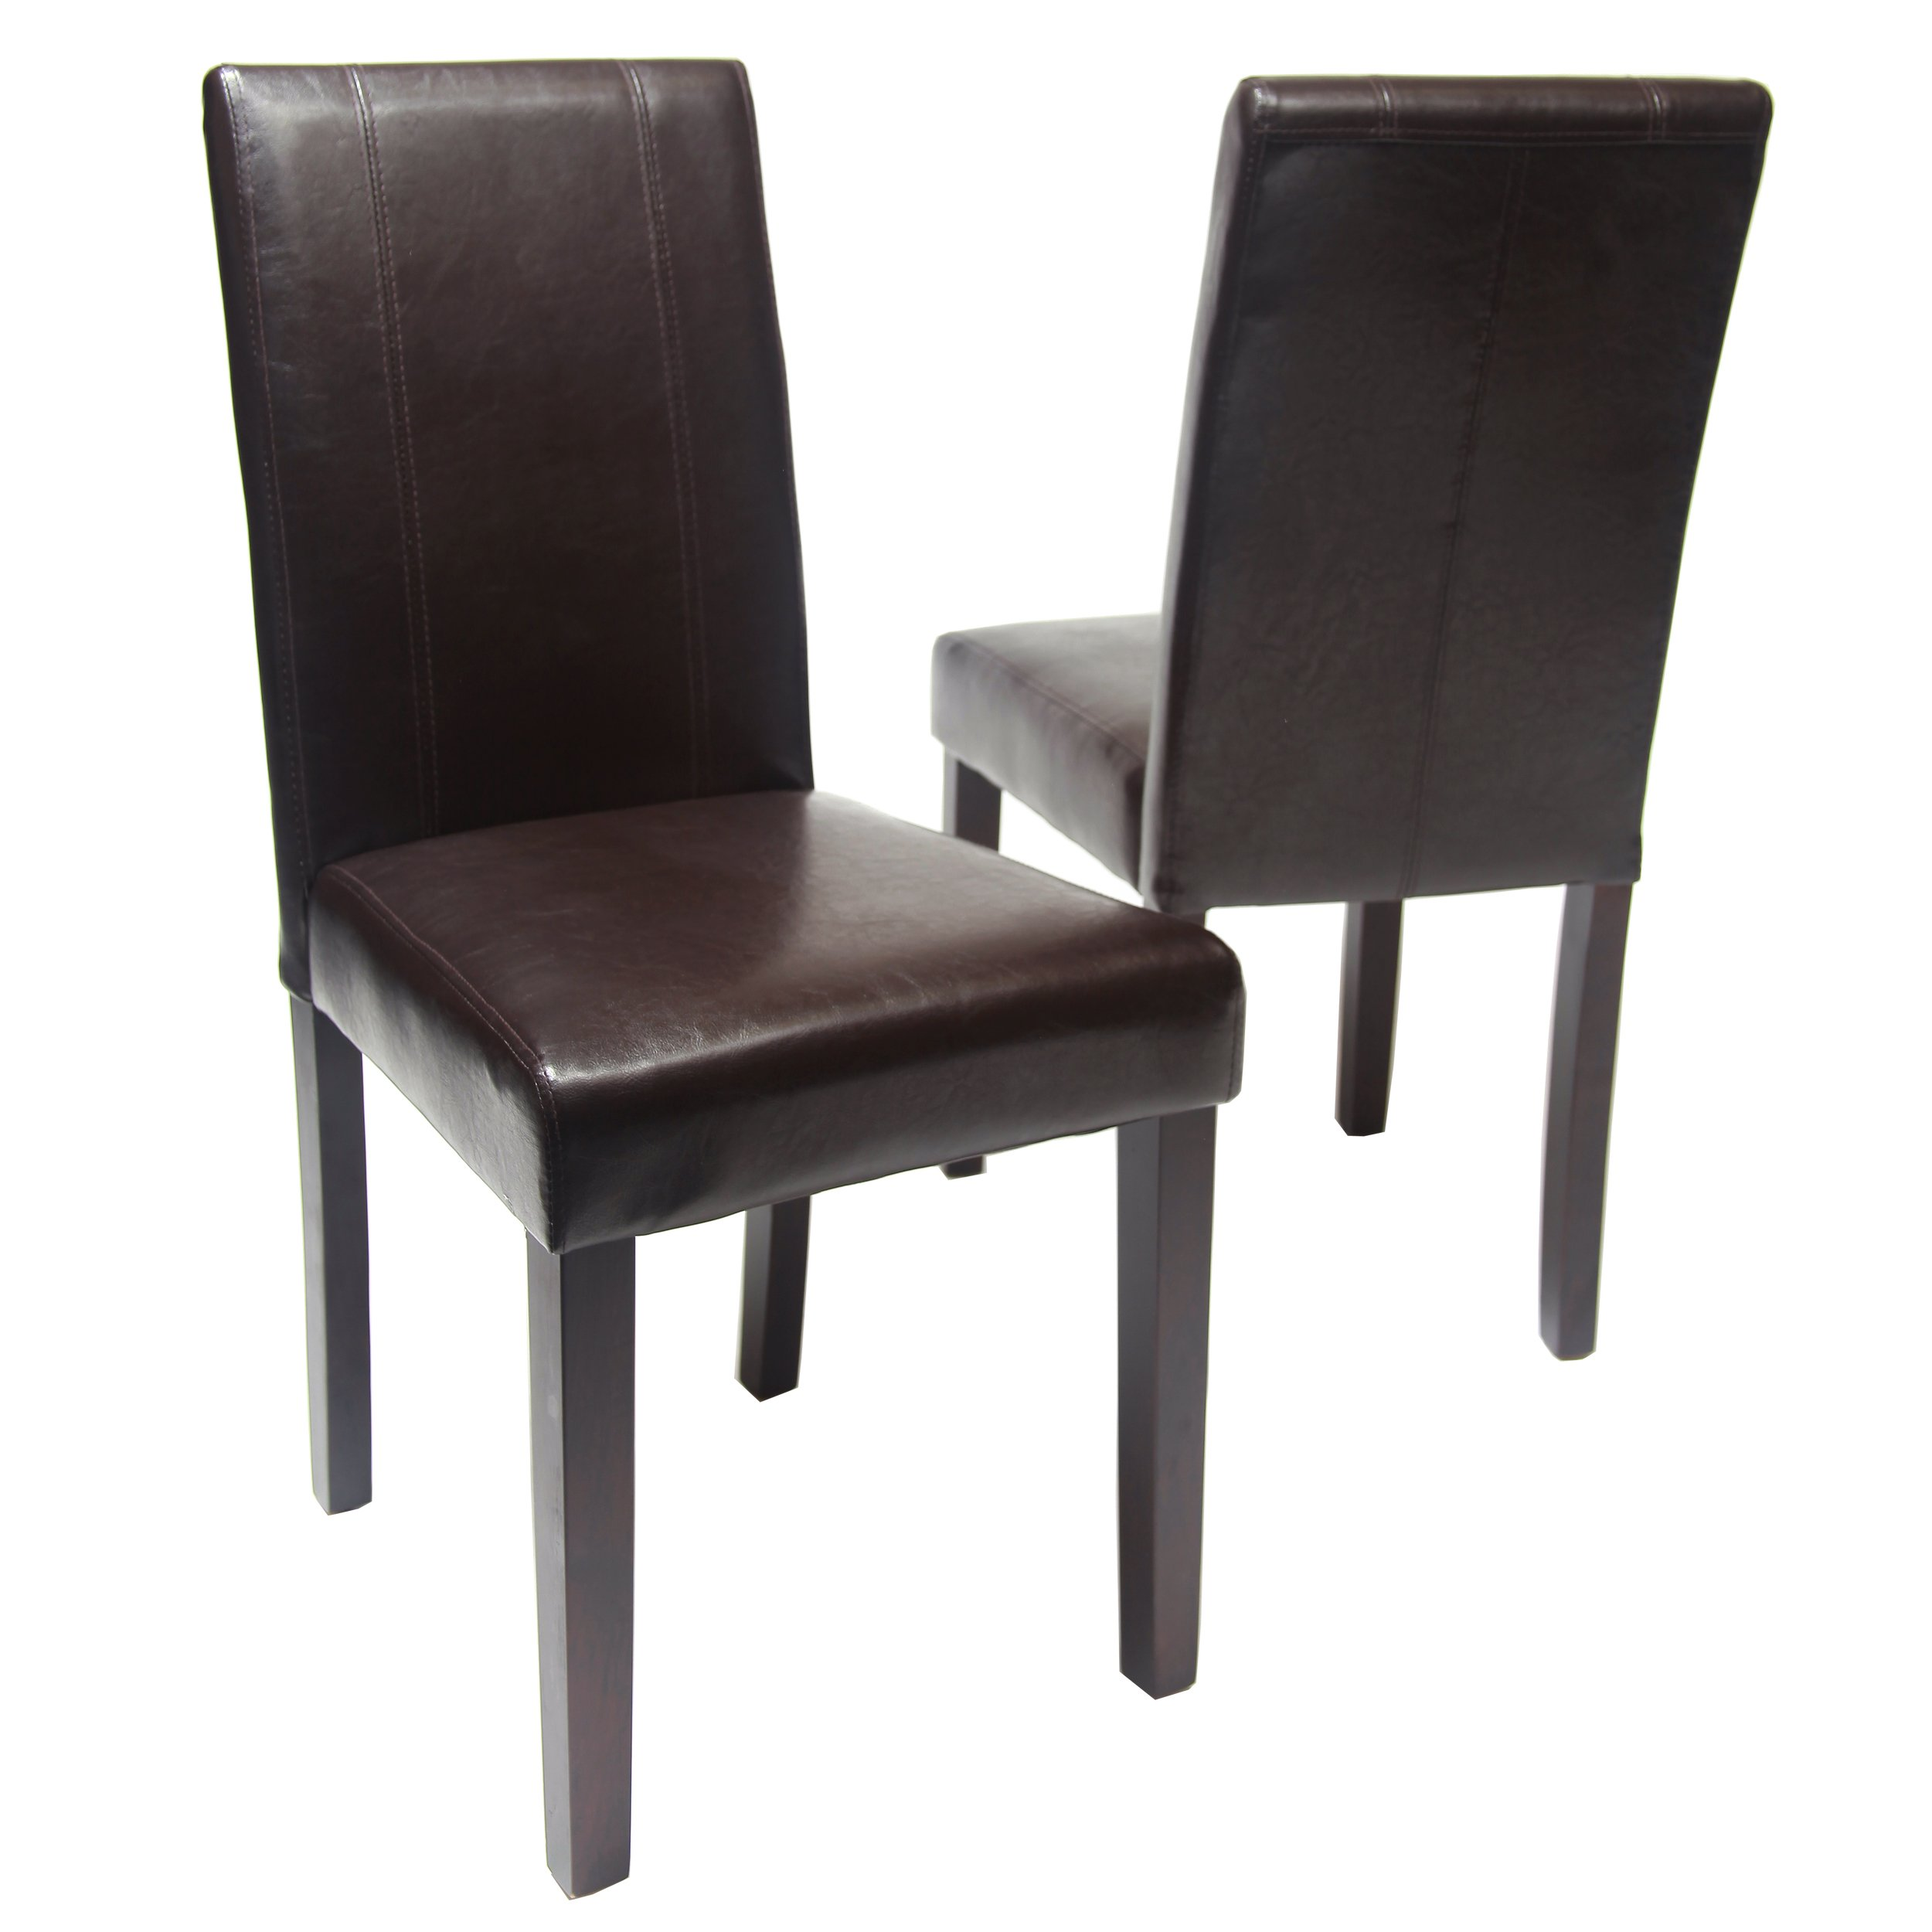 parson chairs cheap plastic adirondack home depot galleon roundhill furniture urban style solid wood